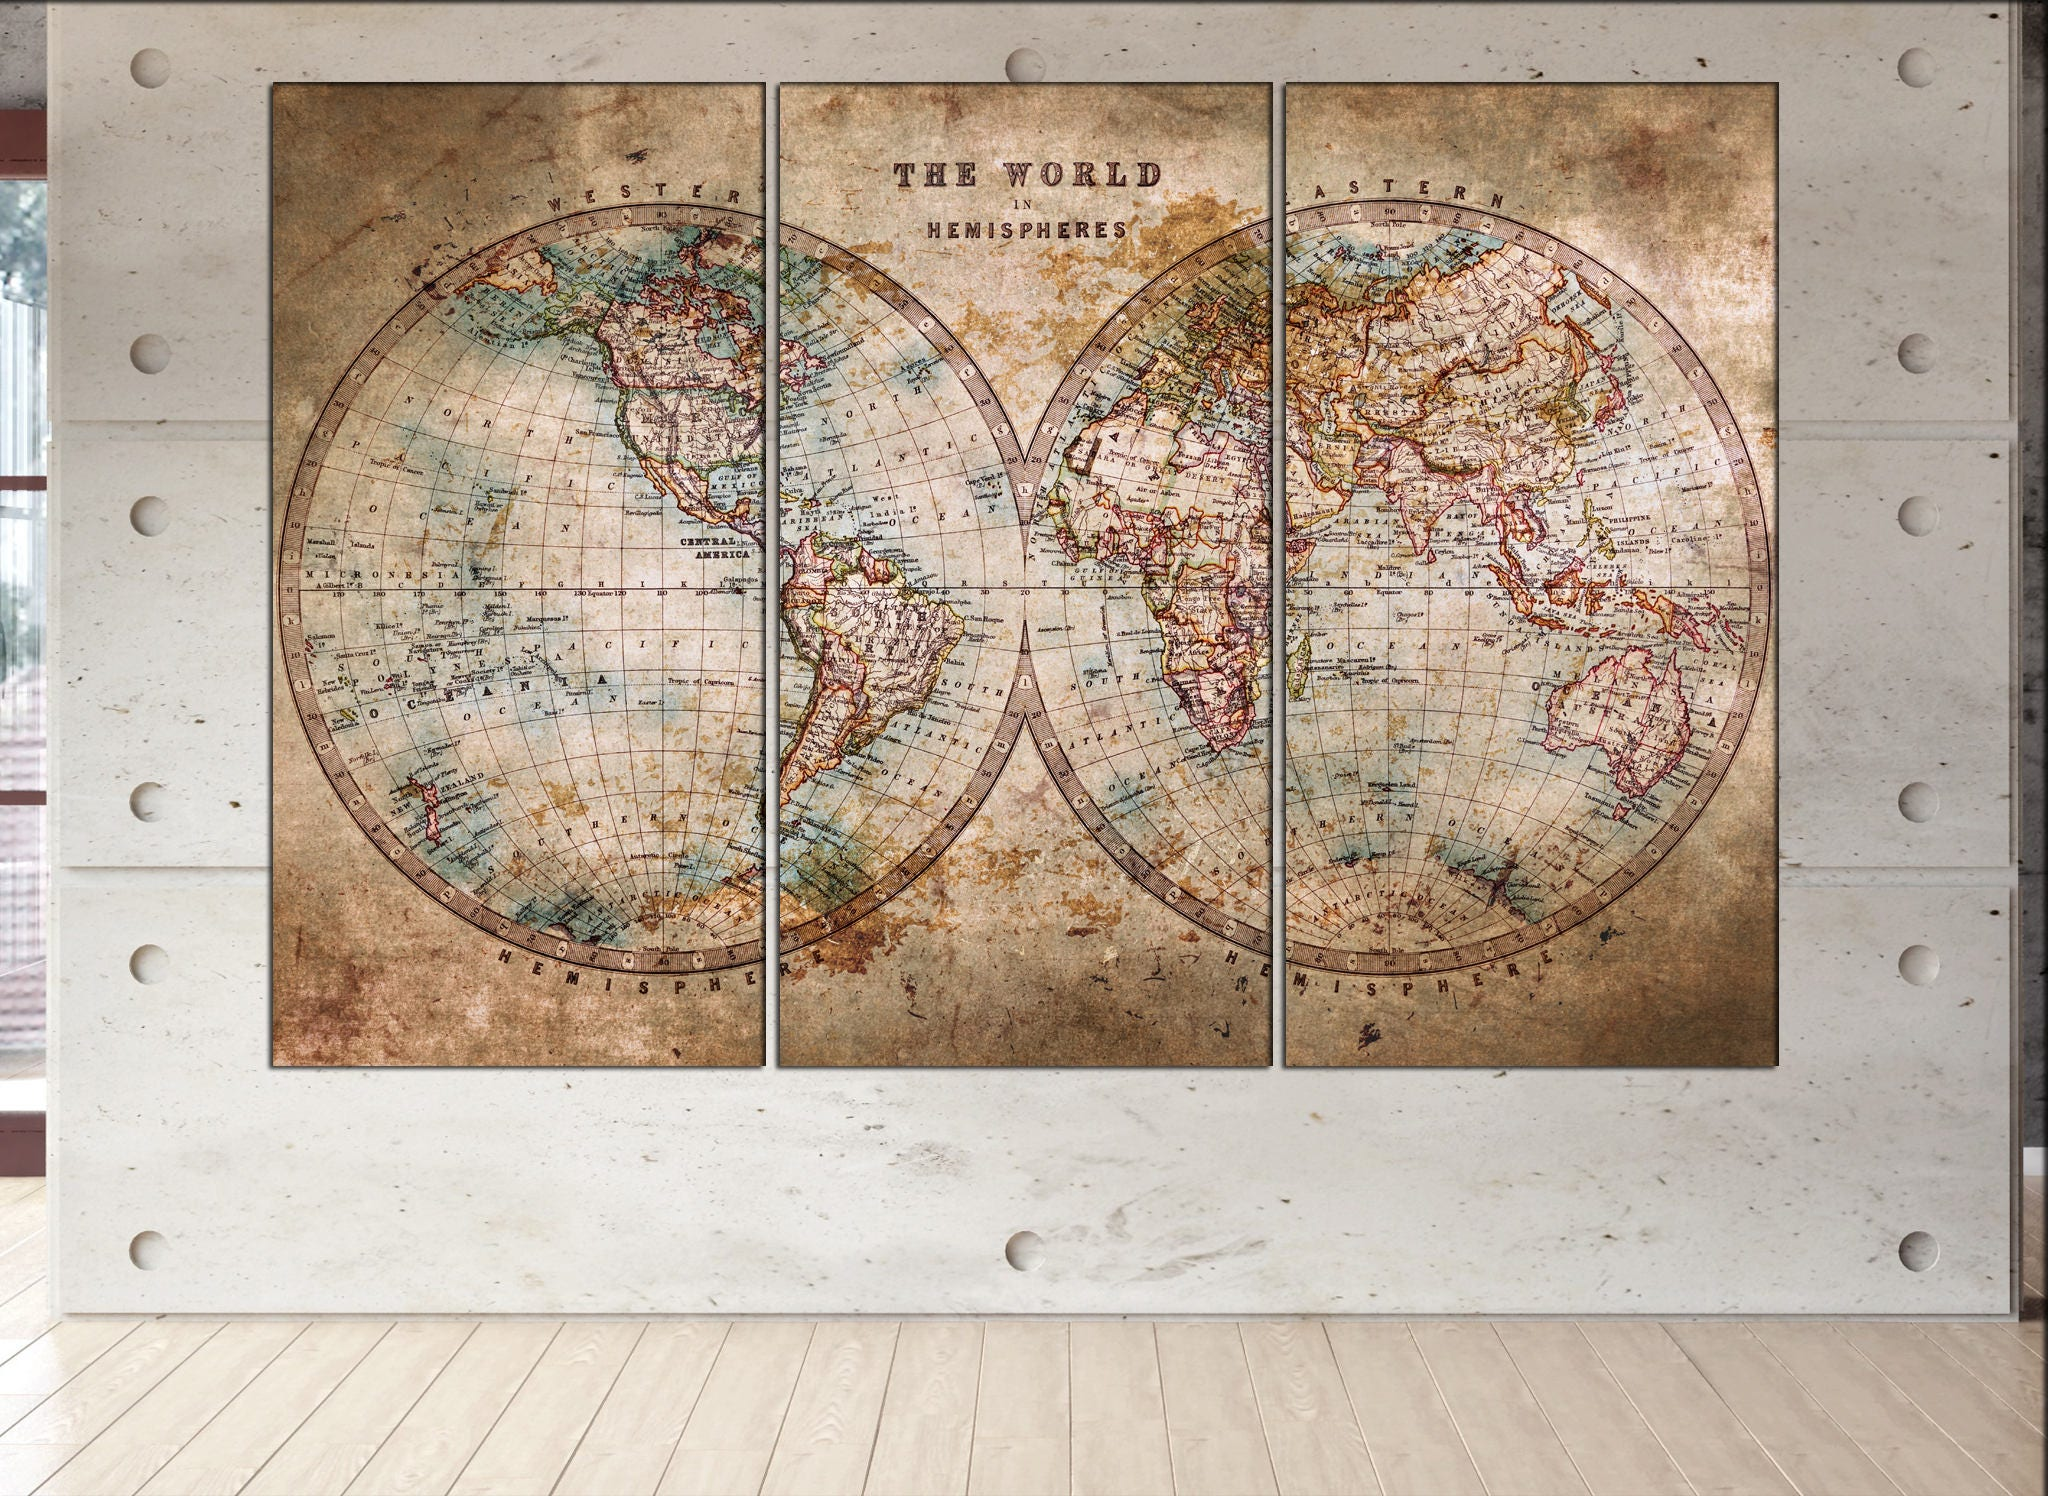 Vintage world map canvas print vintage map canvas old world map vintage world map canvas print vintage map canvas old world map historic map antique style world map art work artwork office decor gumiabroncs Image collections